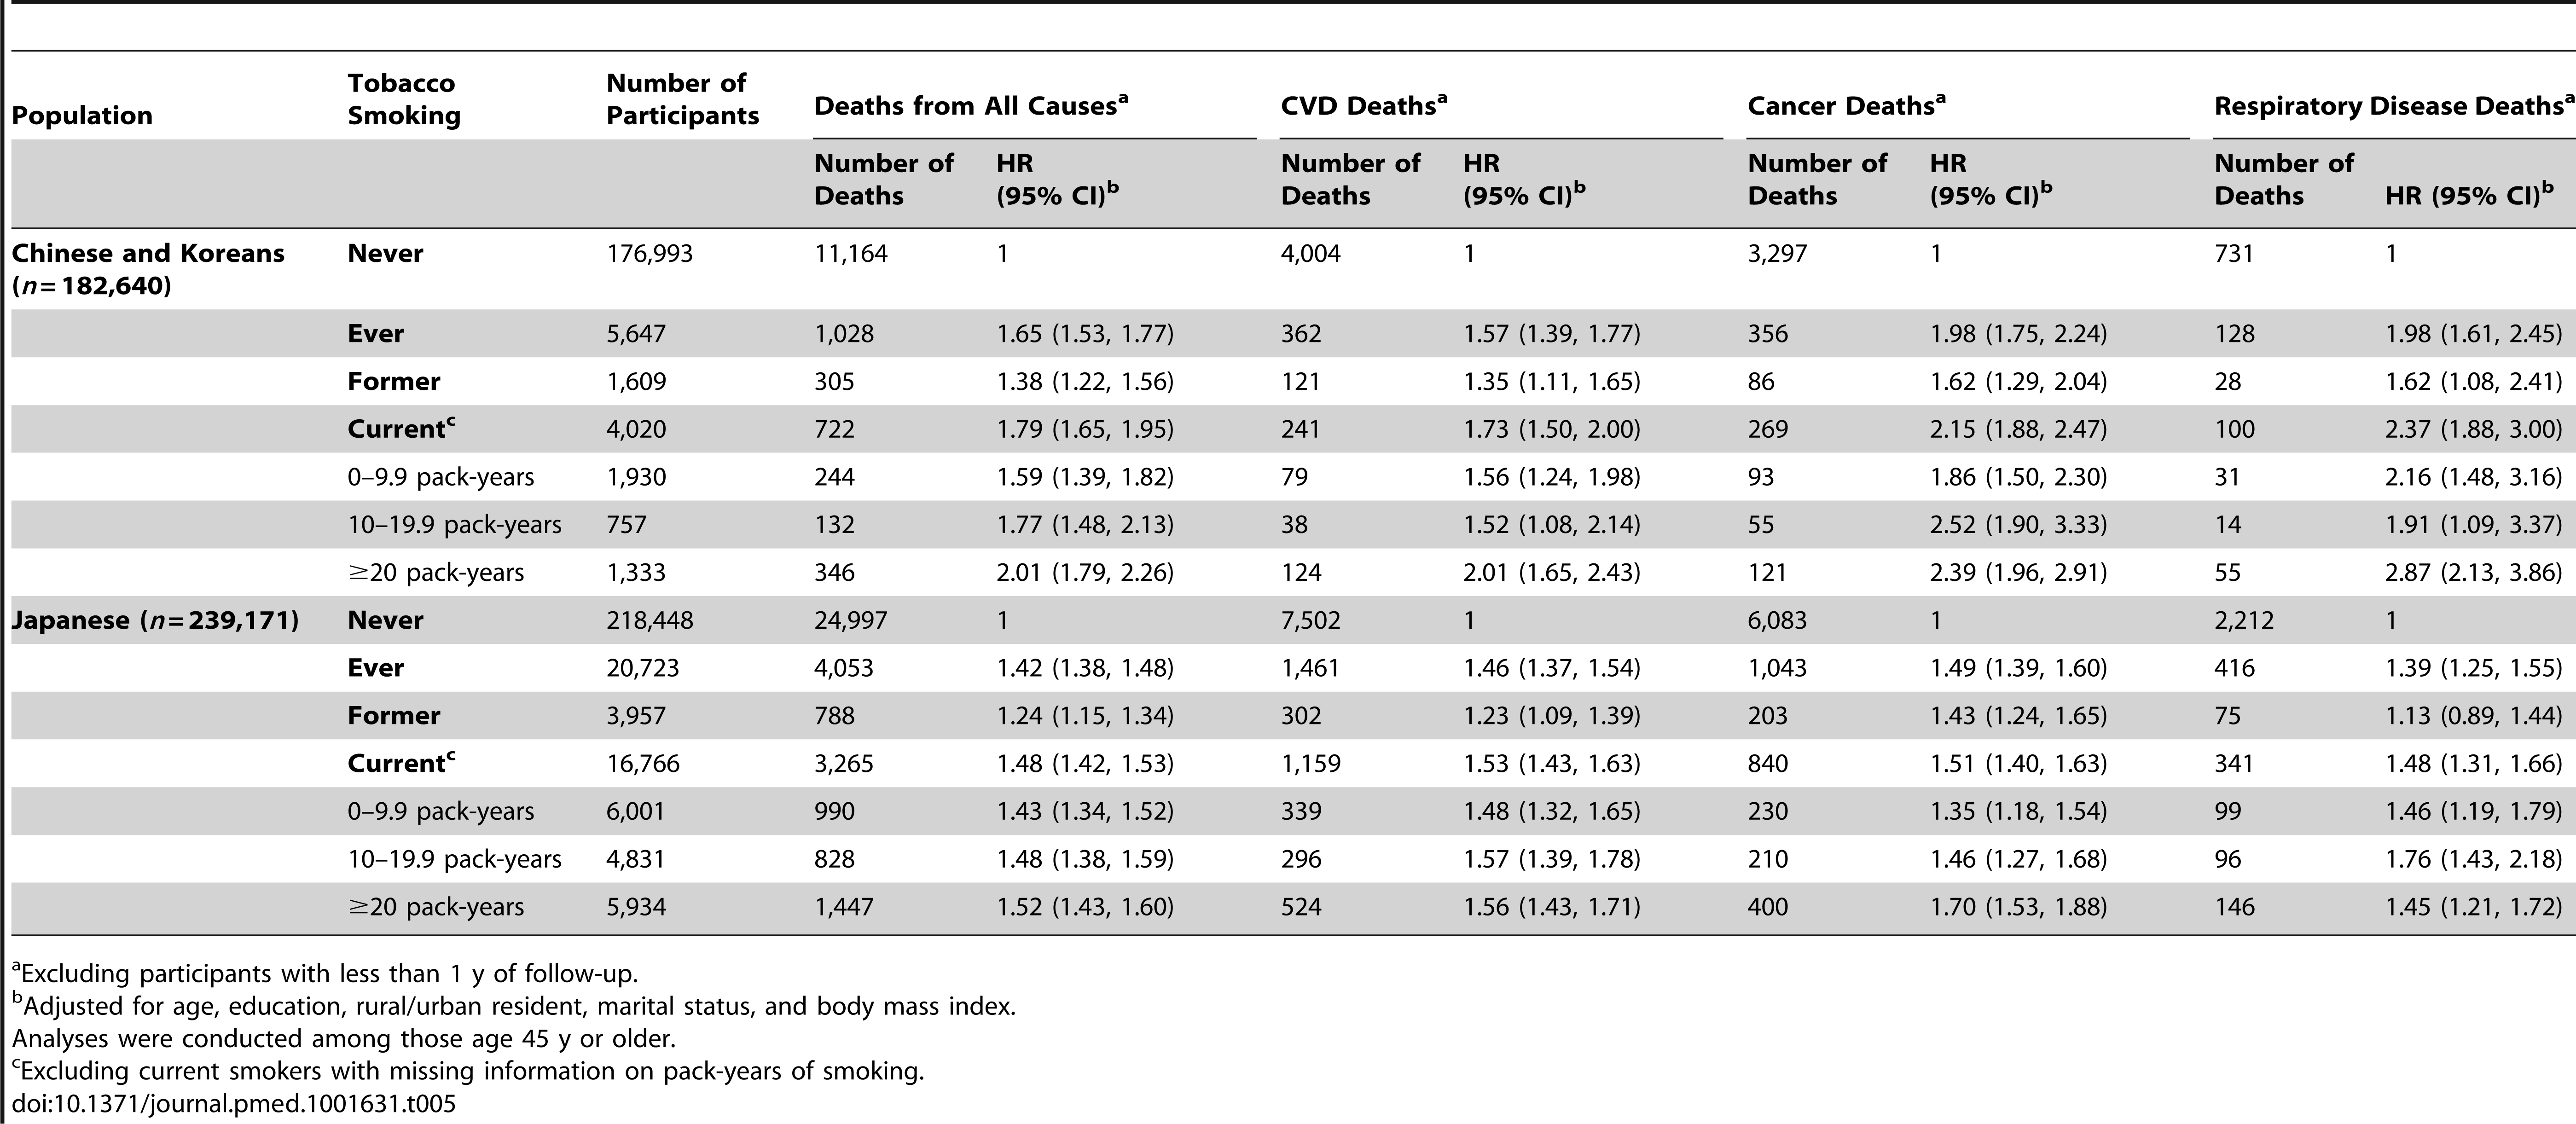 Association of tobacco smoking with risk of death from all causes, cardiovascular diseases, cancer, or respiratory diseases in major East Asian female populations.